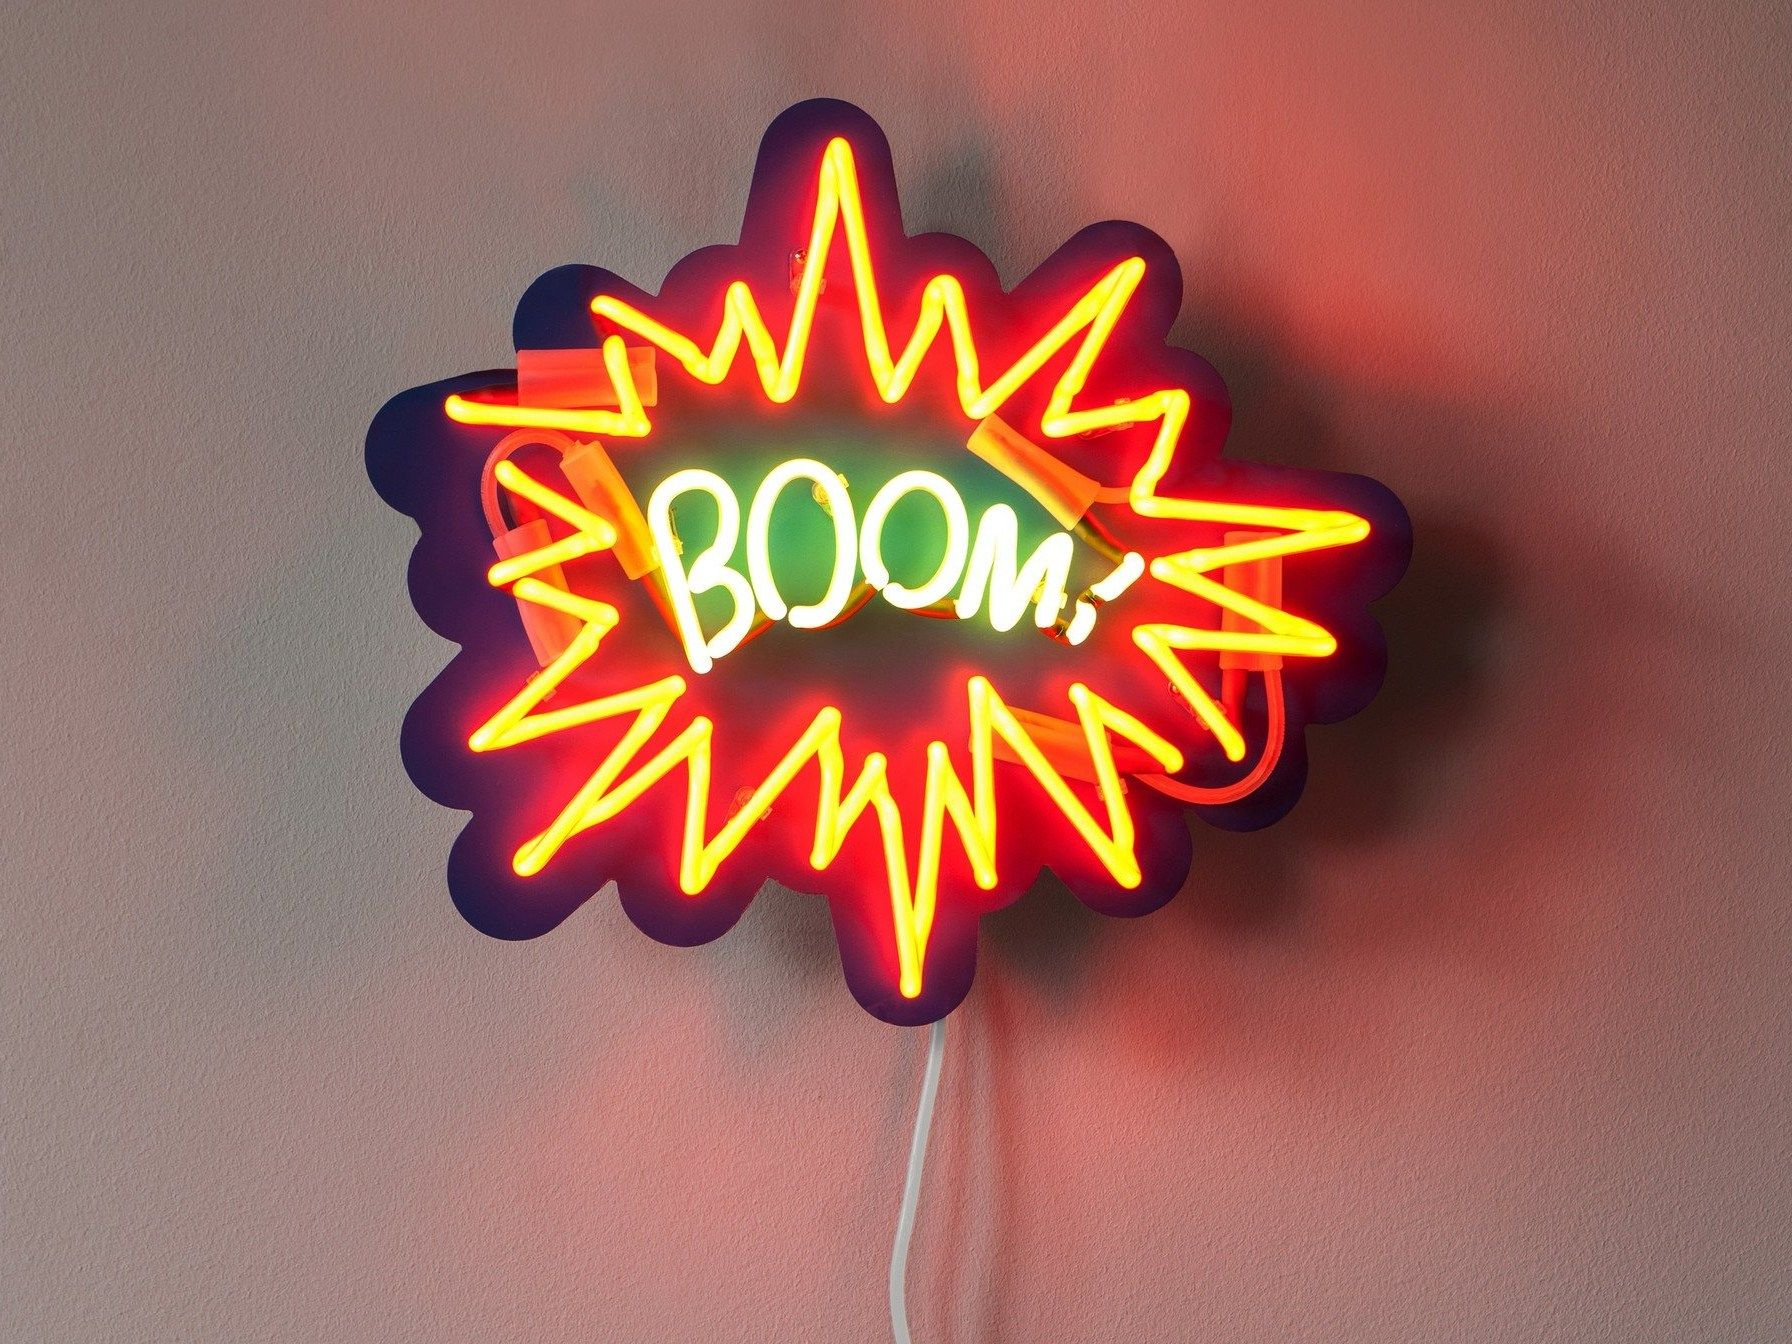 Wall mounted neon light installation BOOM Sygns